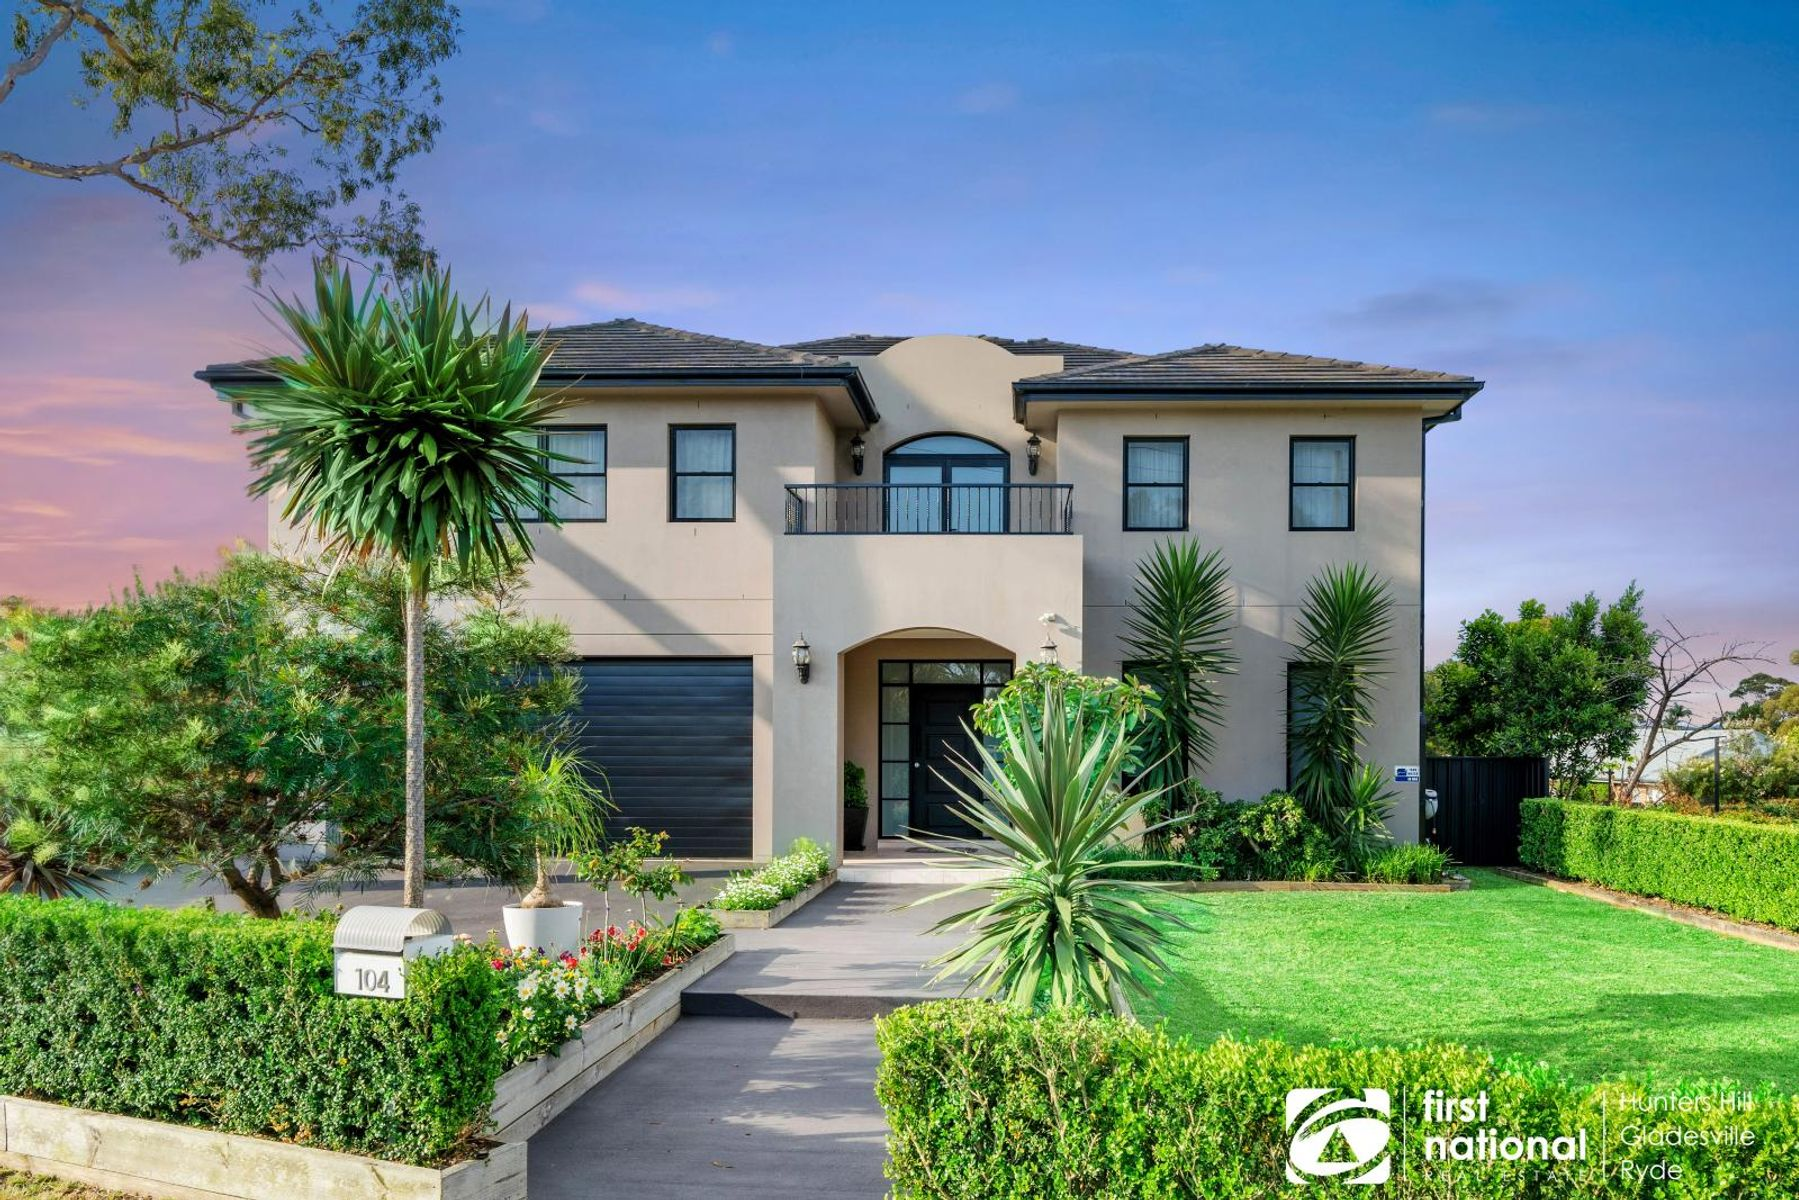 104 Lovell Road, Ryde, NSW 2112